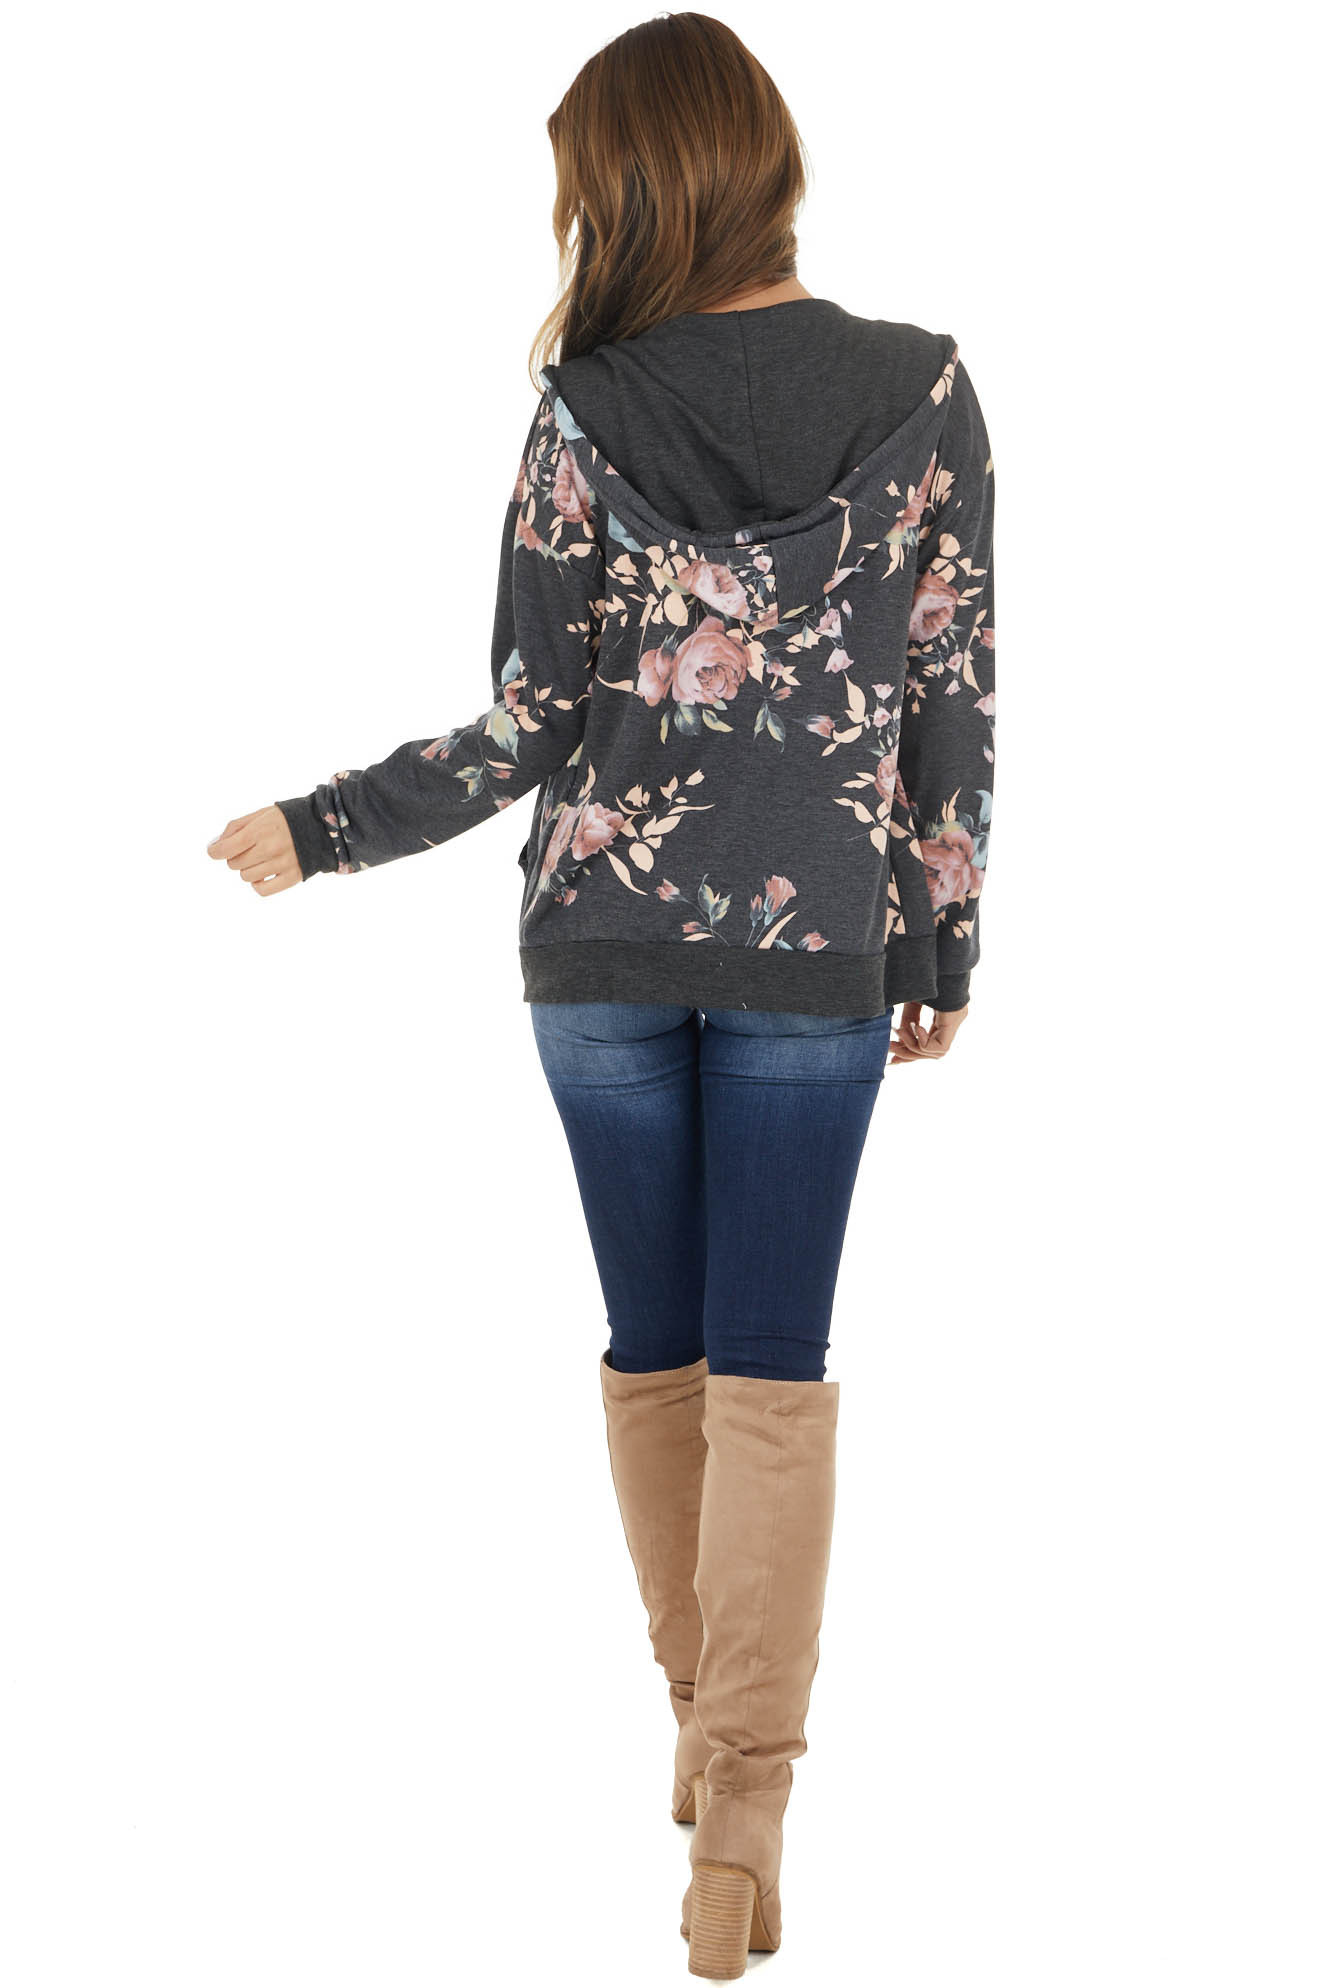 Charcoal Floral Print Jacket with Hood and Zipper Detail